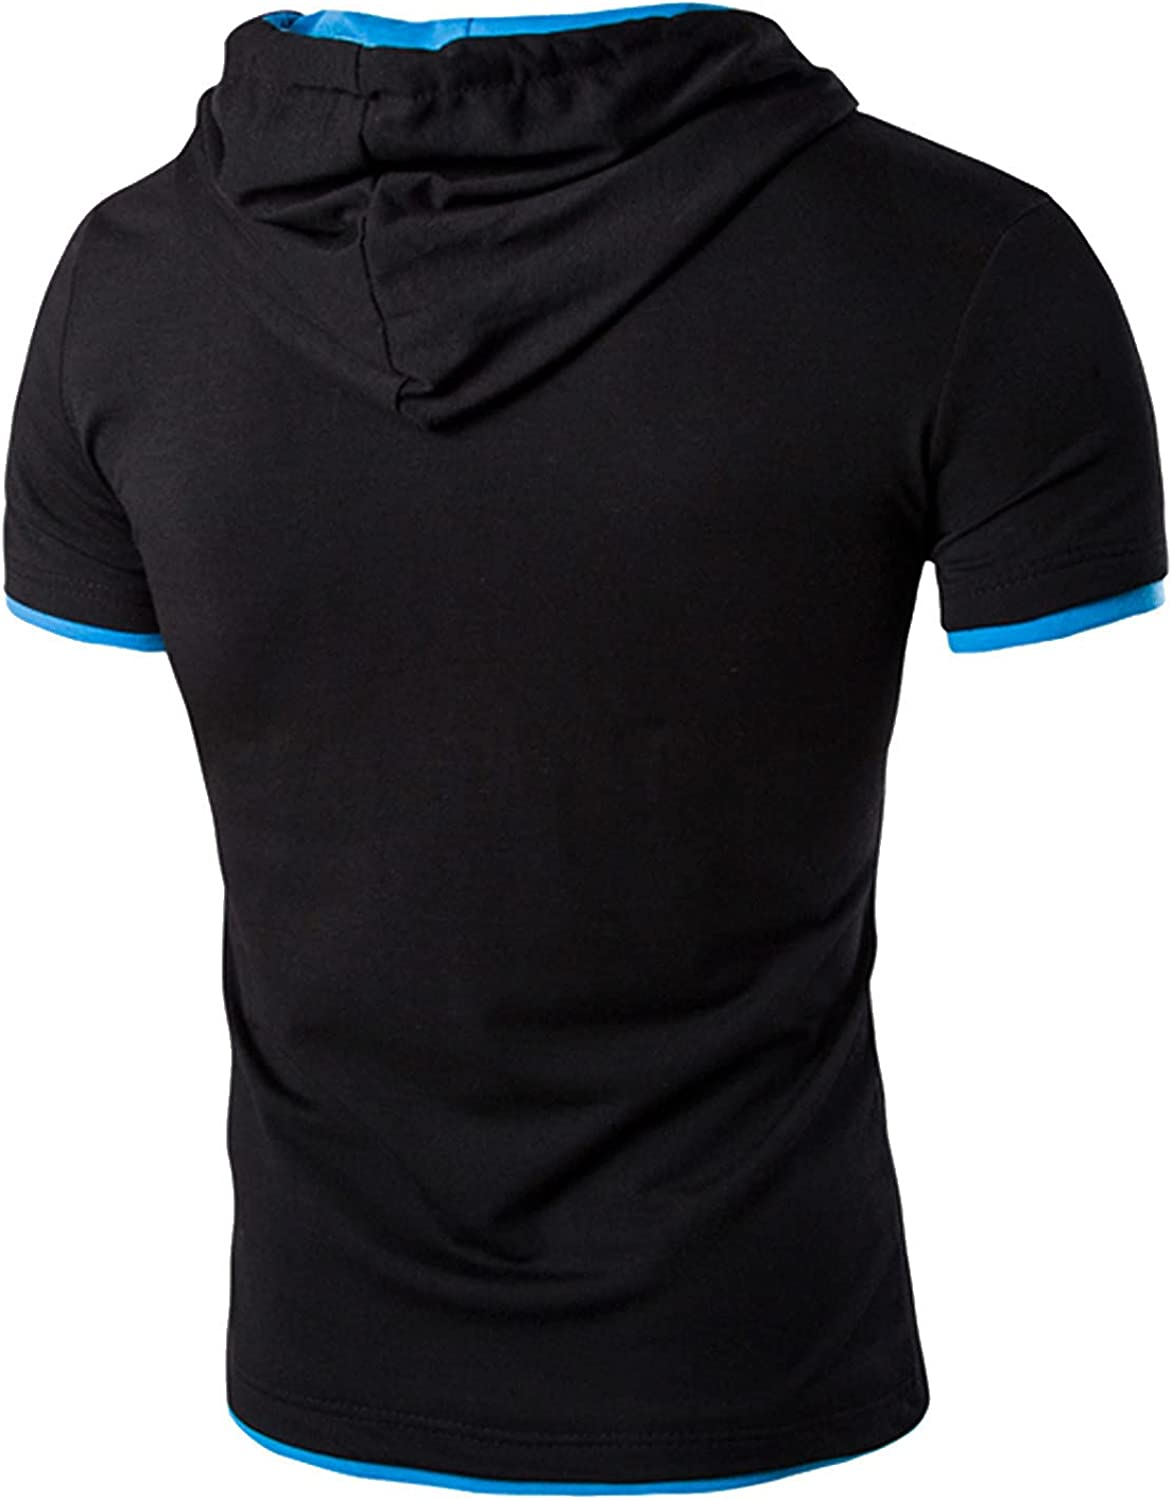 DZQUY Workout Shirts for Men Short Sleeve Summer Casual Muscle T-Shirt Hipster Bodybuilding Gym Hooded Fitted Shirts